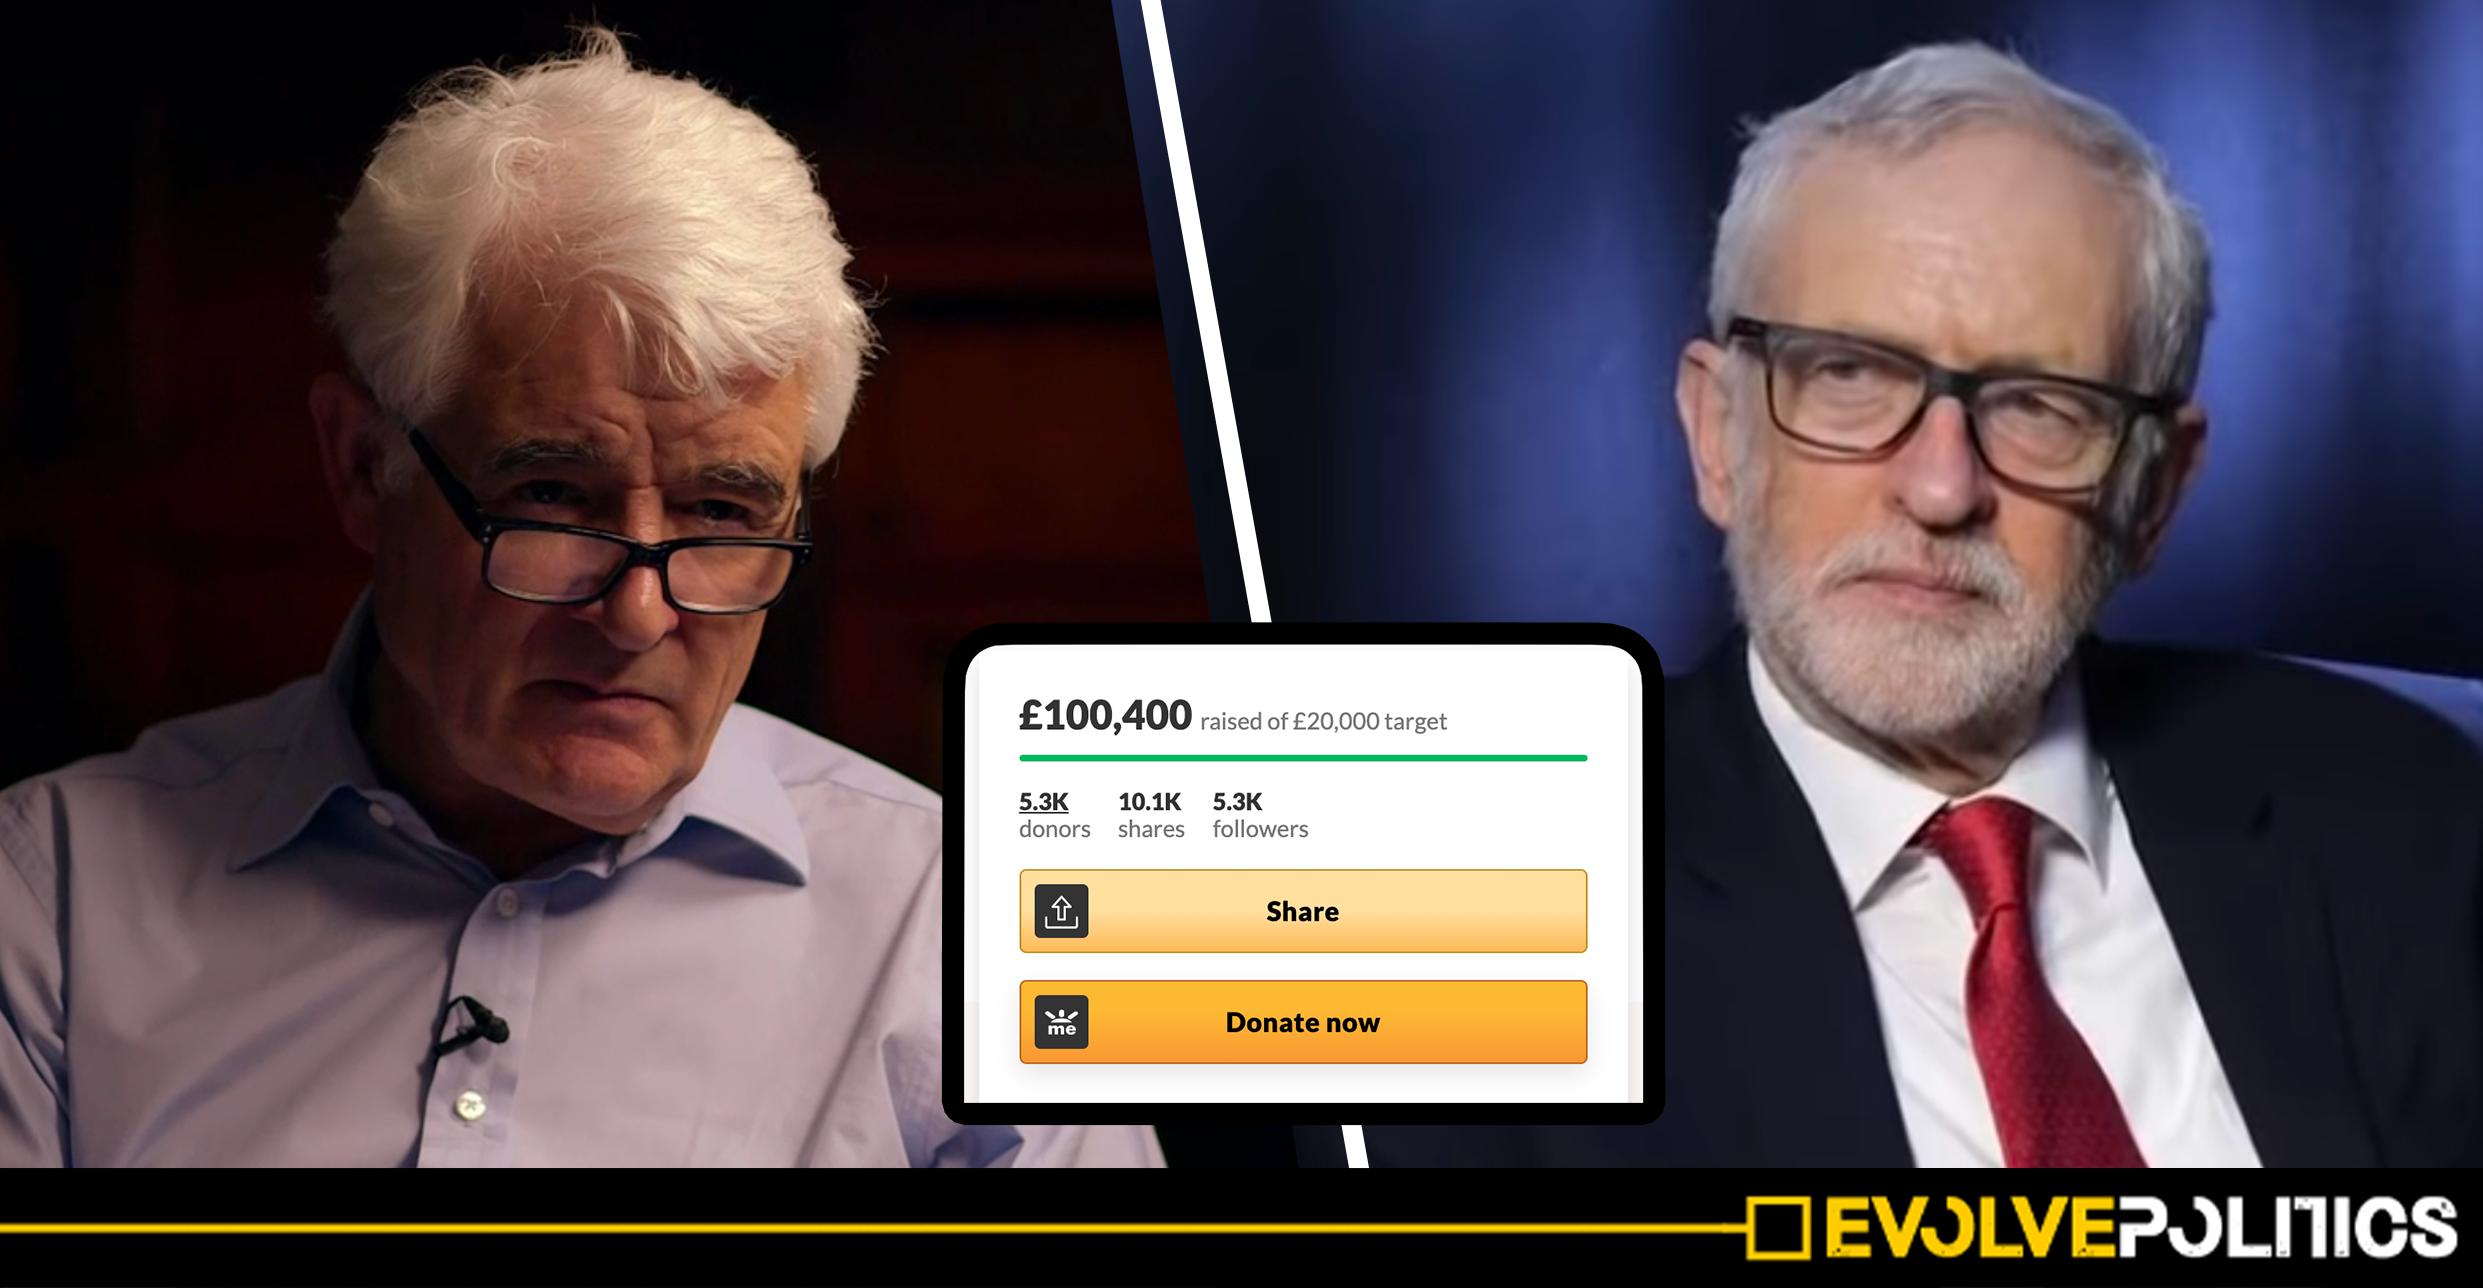 Jeremy Corbyn supporters raise over £100,000 in 24 hours to fund legal battle with BBC Panorama journalist